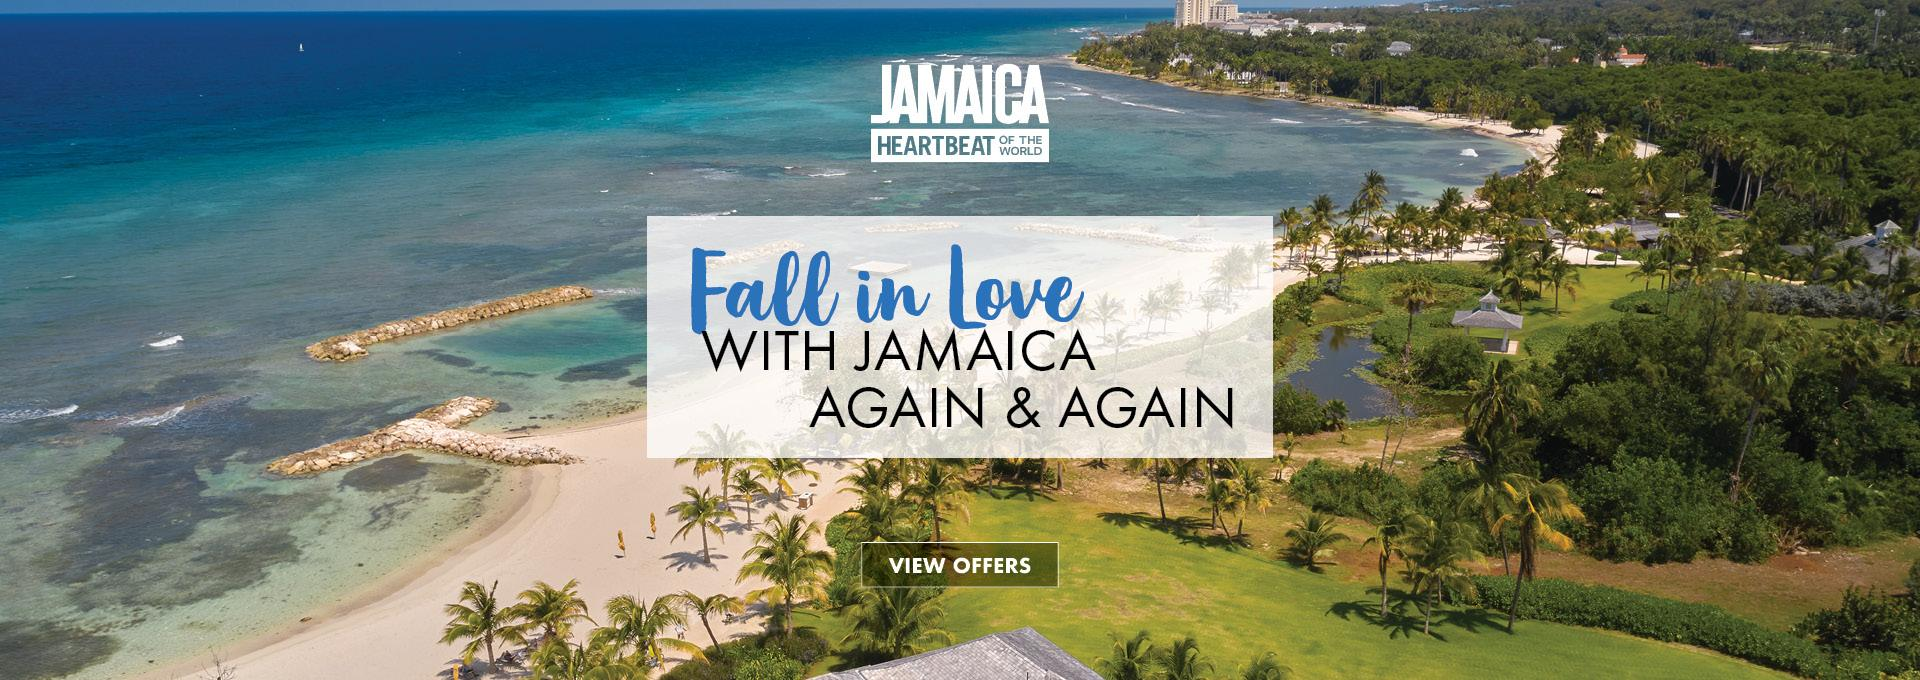 Tourism Jamaica - Fall in Love with Jamaica Again and Again